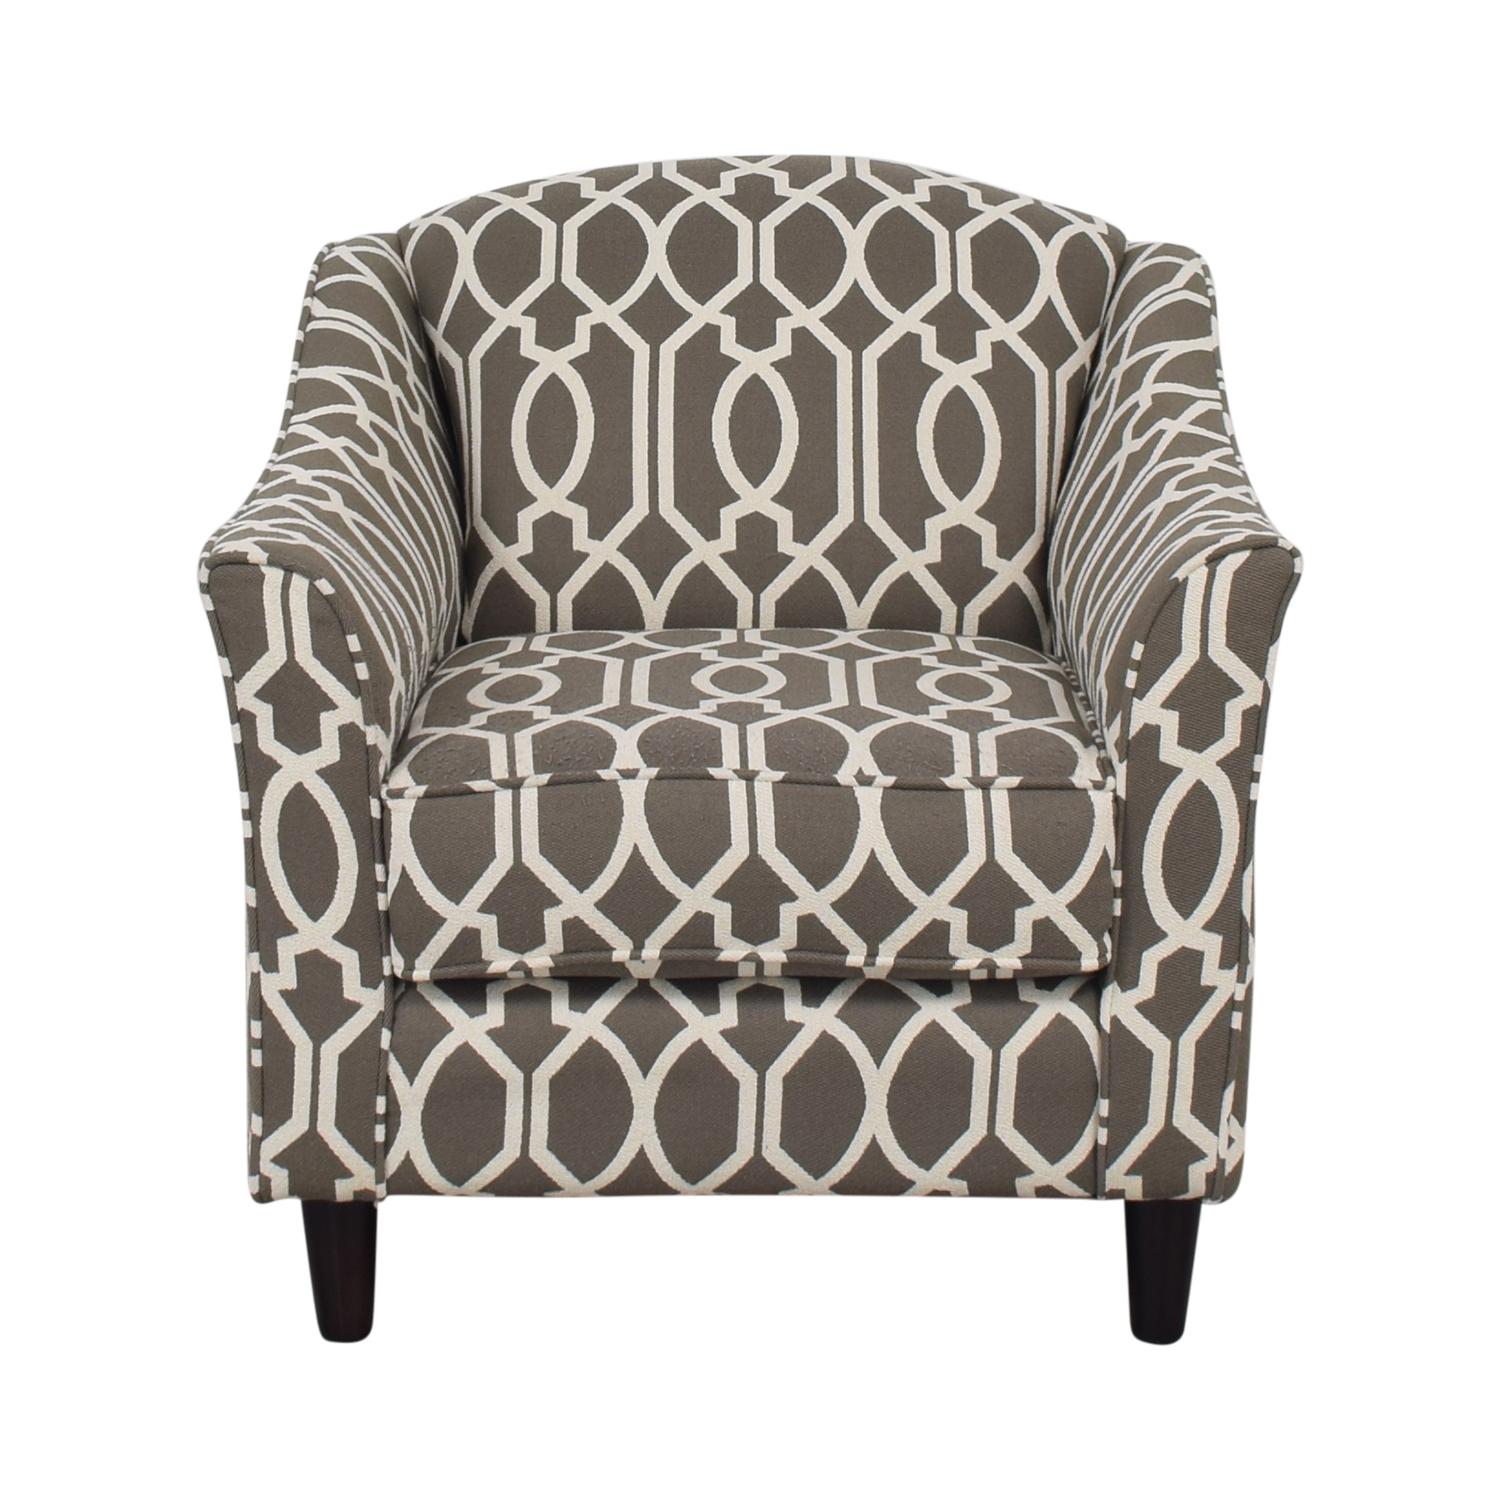 Raymour & Flanigan Raymour & Flanigan Accent Chair on sale